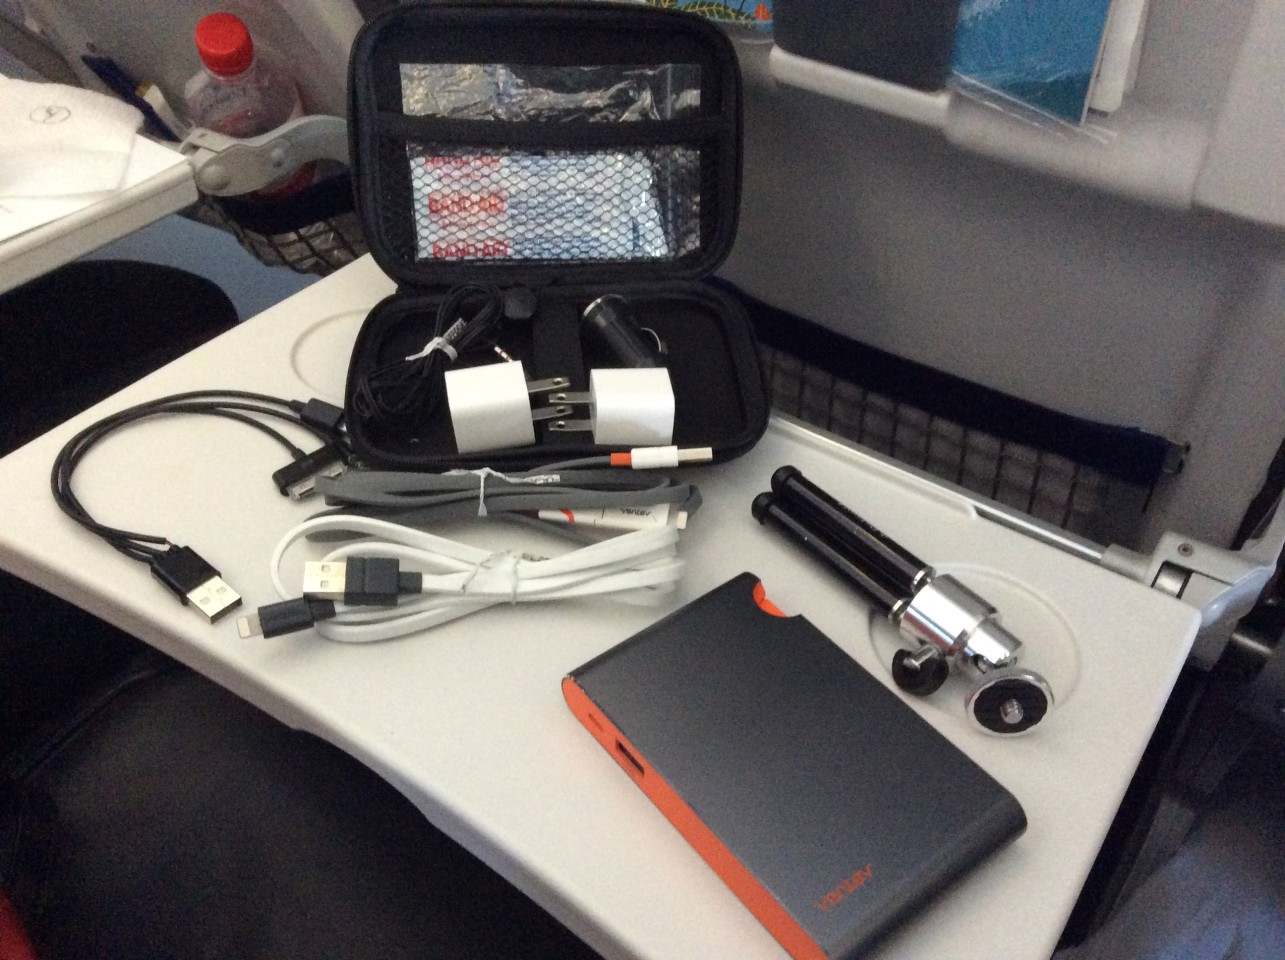 The Art of Travel Preparation ~ What's in my travel bag? Ventev mobile accessories and battery chargers are a must for us